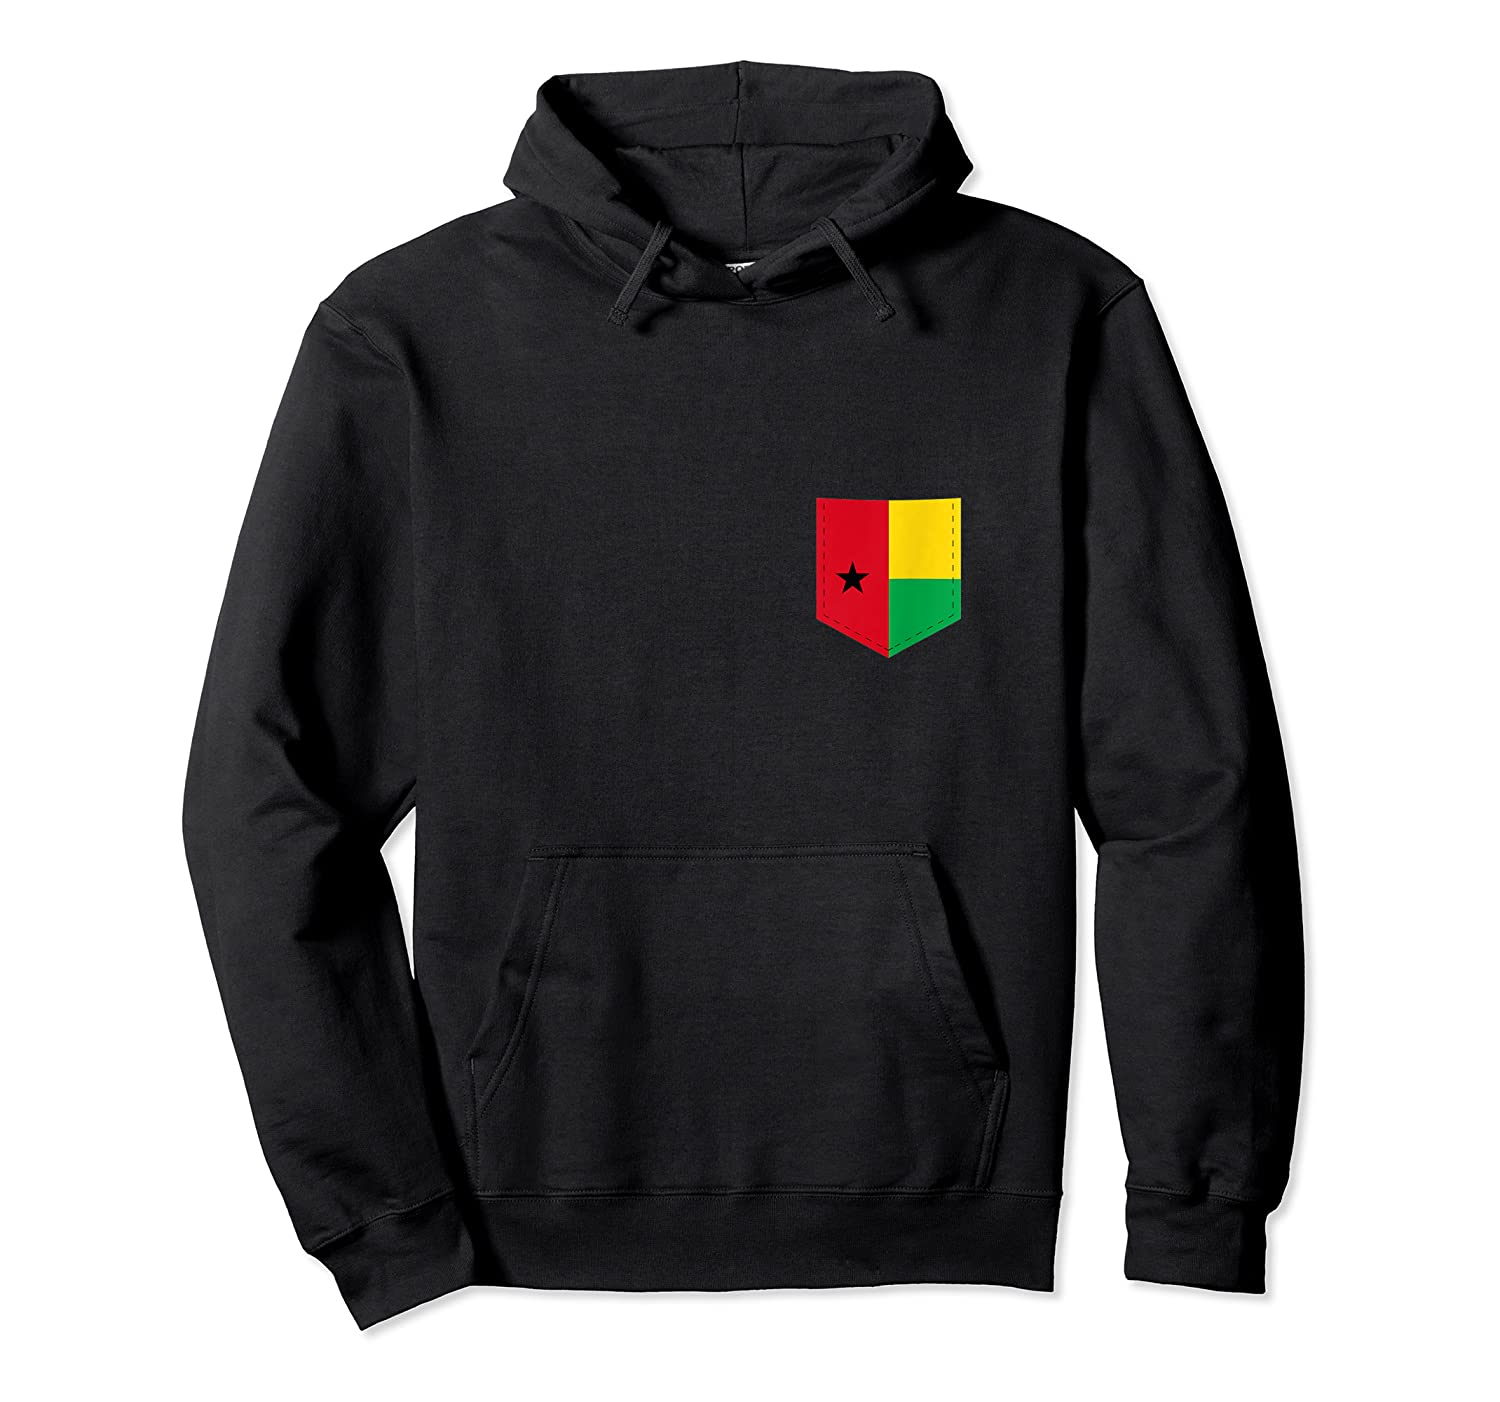 Guinea Bissau Flag Art With Printed Guinea Bissaun Pocket Tank Top Shirts Unisex Pullover Hoodie